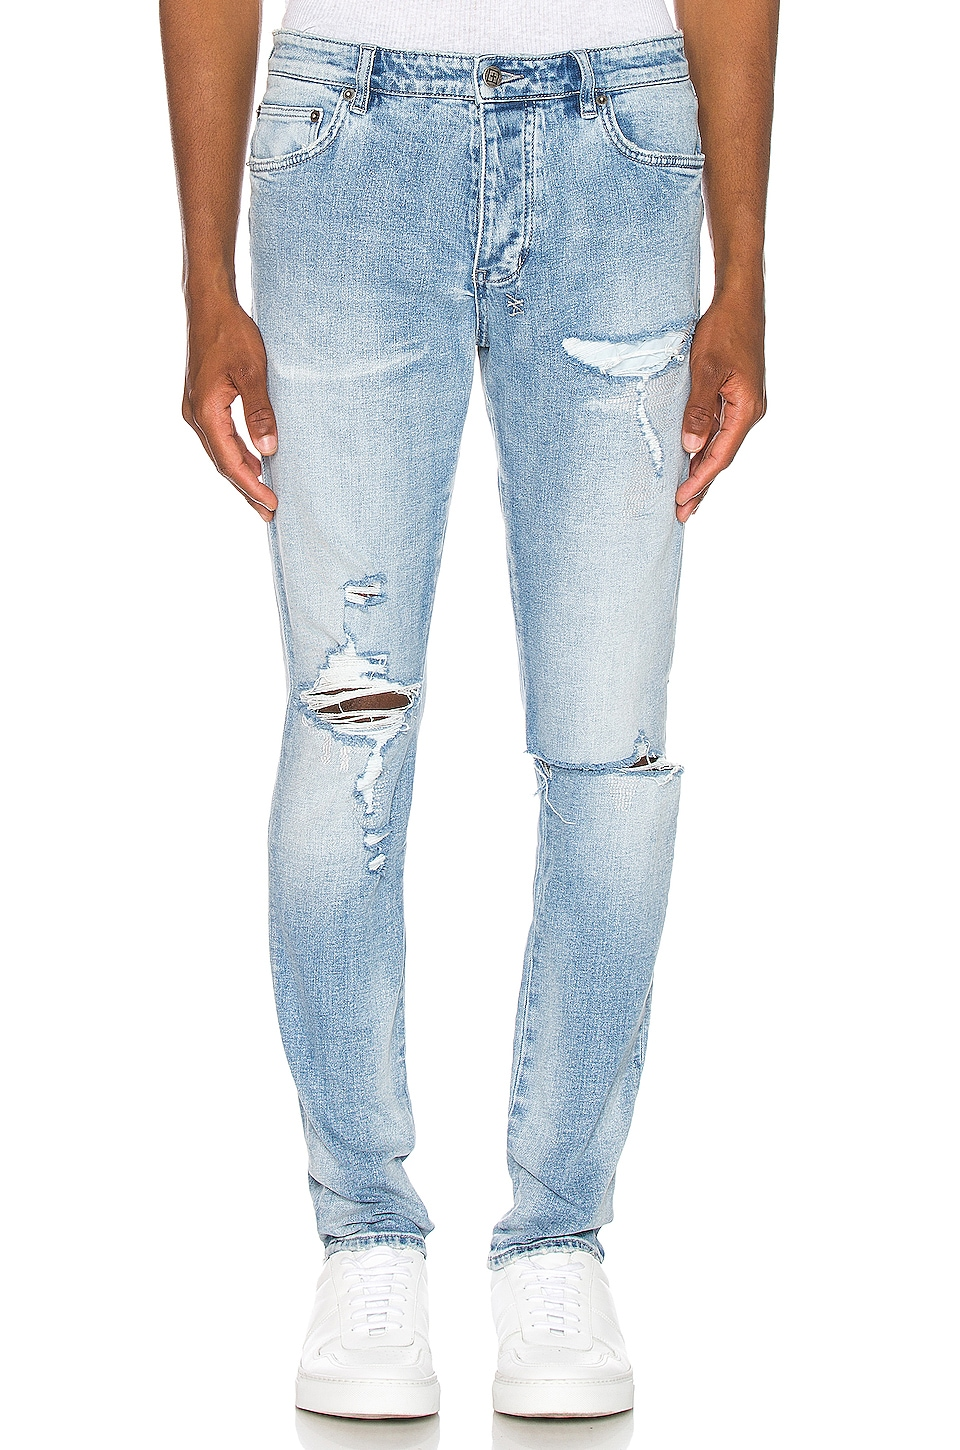 Ksubi Chitch Punk Blue Thrashed Jean in Denim